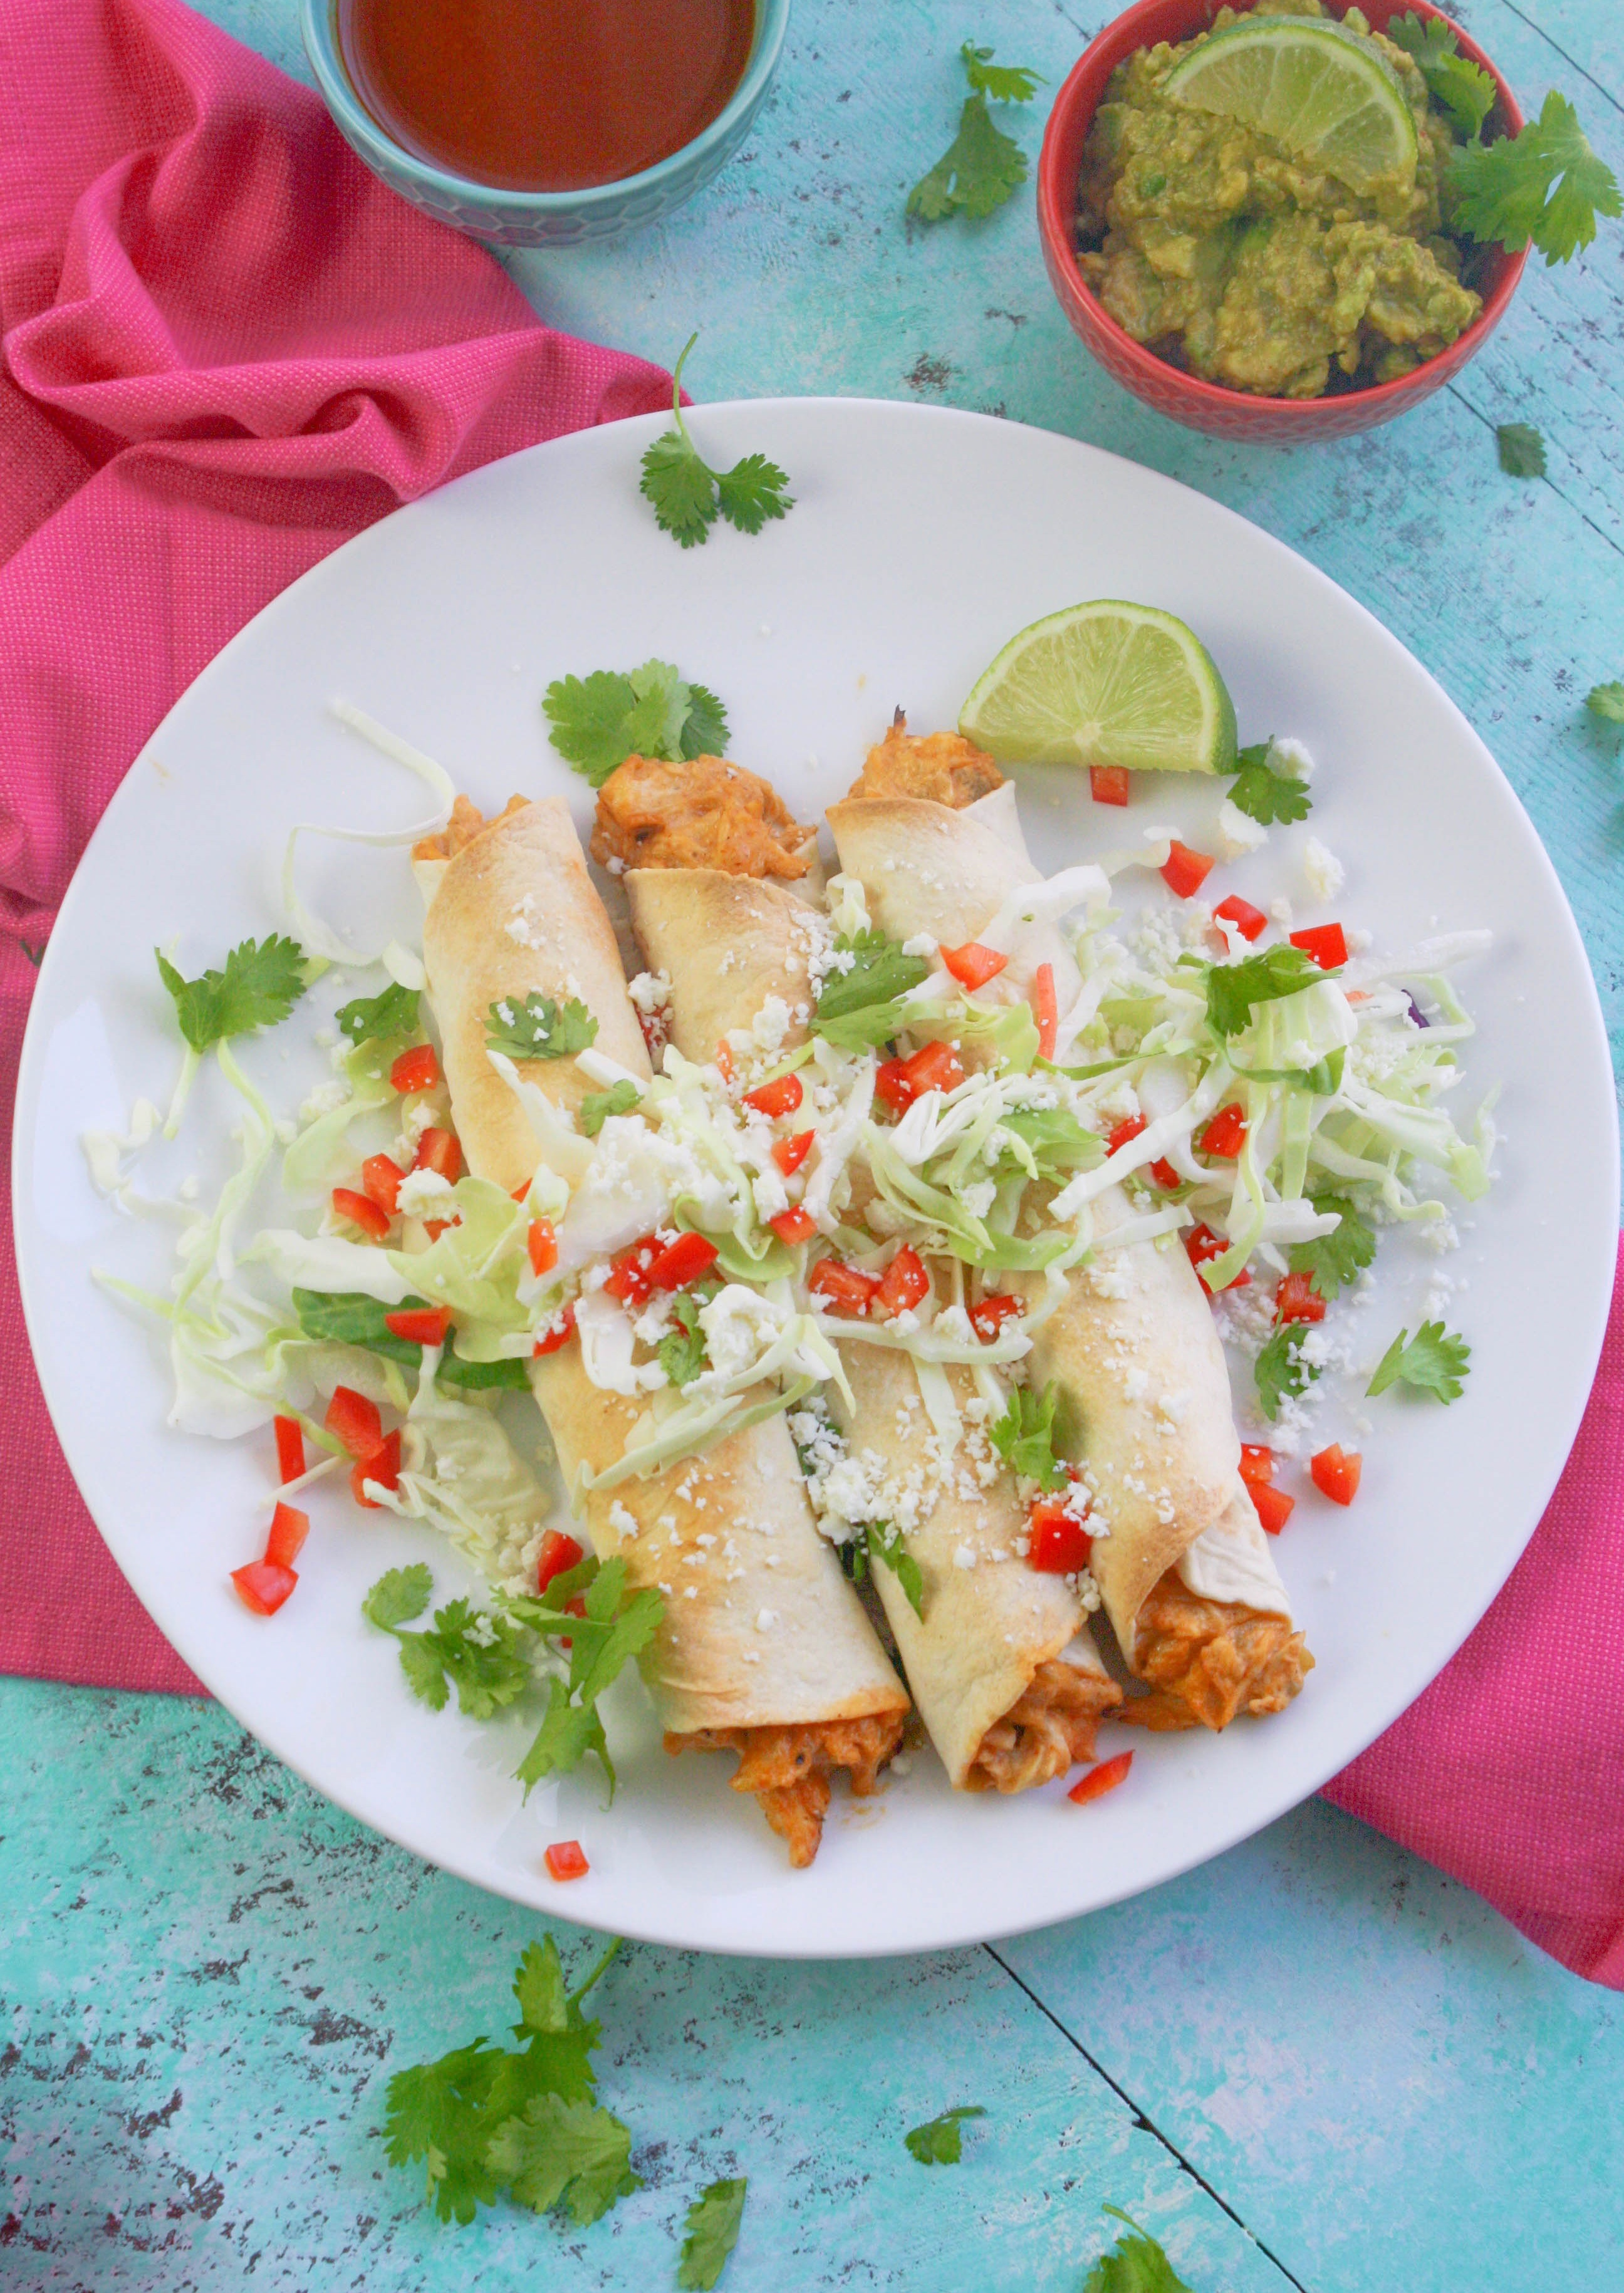 Baked Chicken and Green Chile Taquitos are easy to make for a favorite snack. Baked Chicken and Green Chile Taquitos are a Mexican-inspired favorite dish!